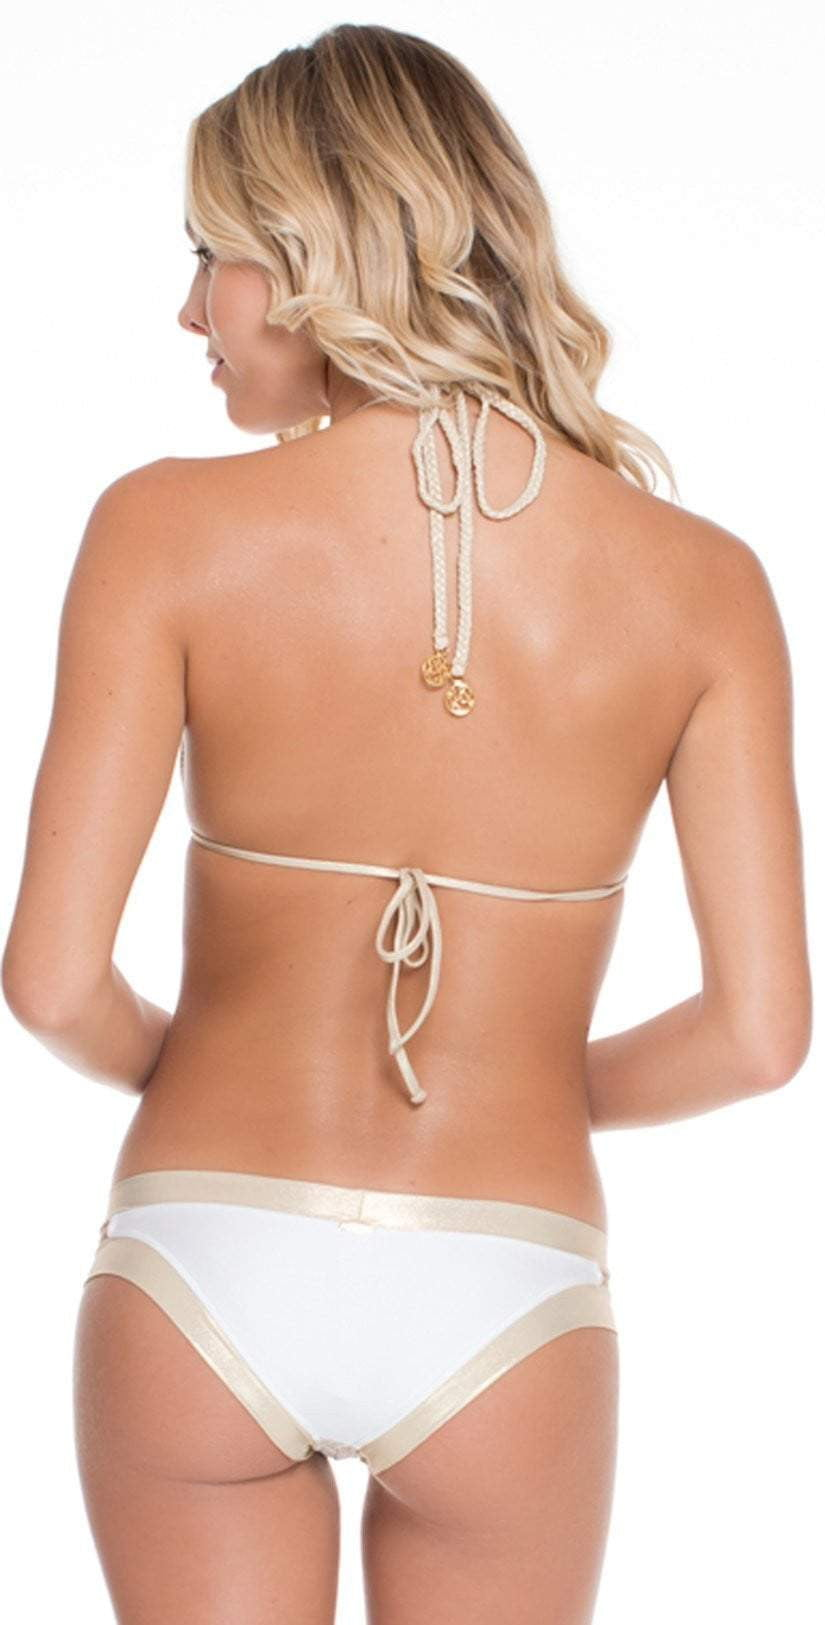 Luli Fama Desert Babe Triangle Halter L469230 back view top and bottom